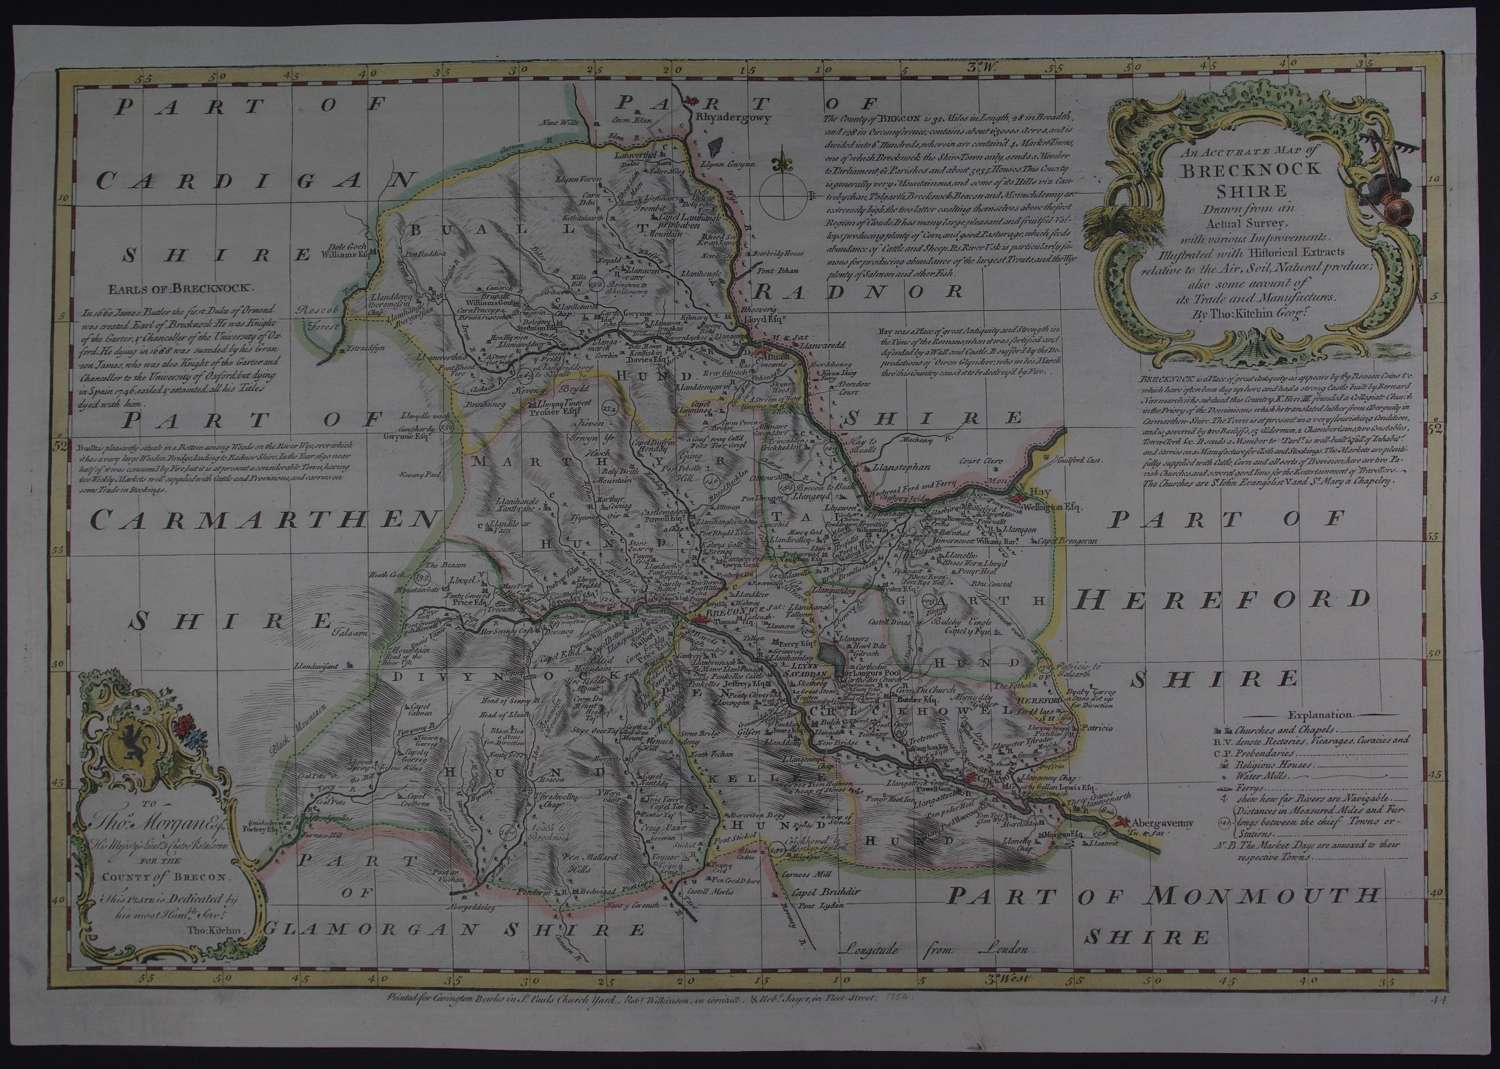 An Accurate Map of Brecknockshire by Thomas Kitchen